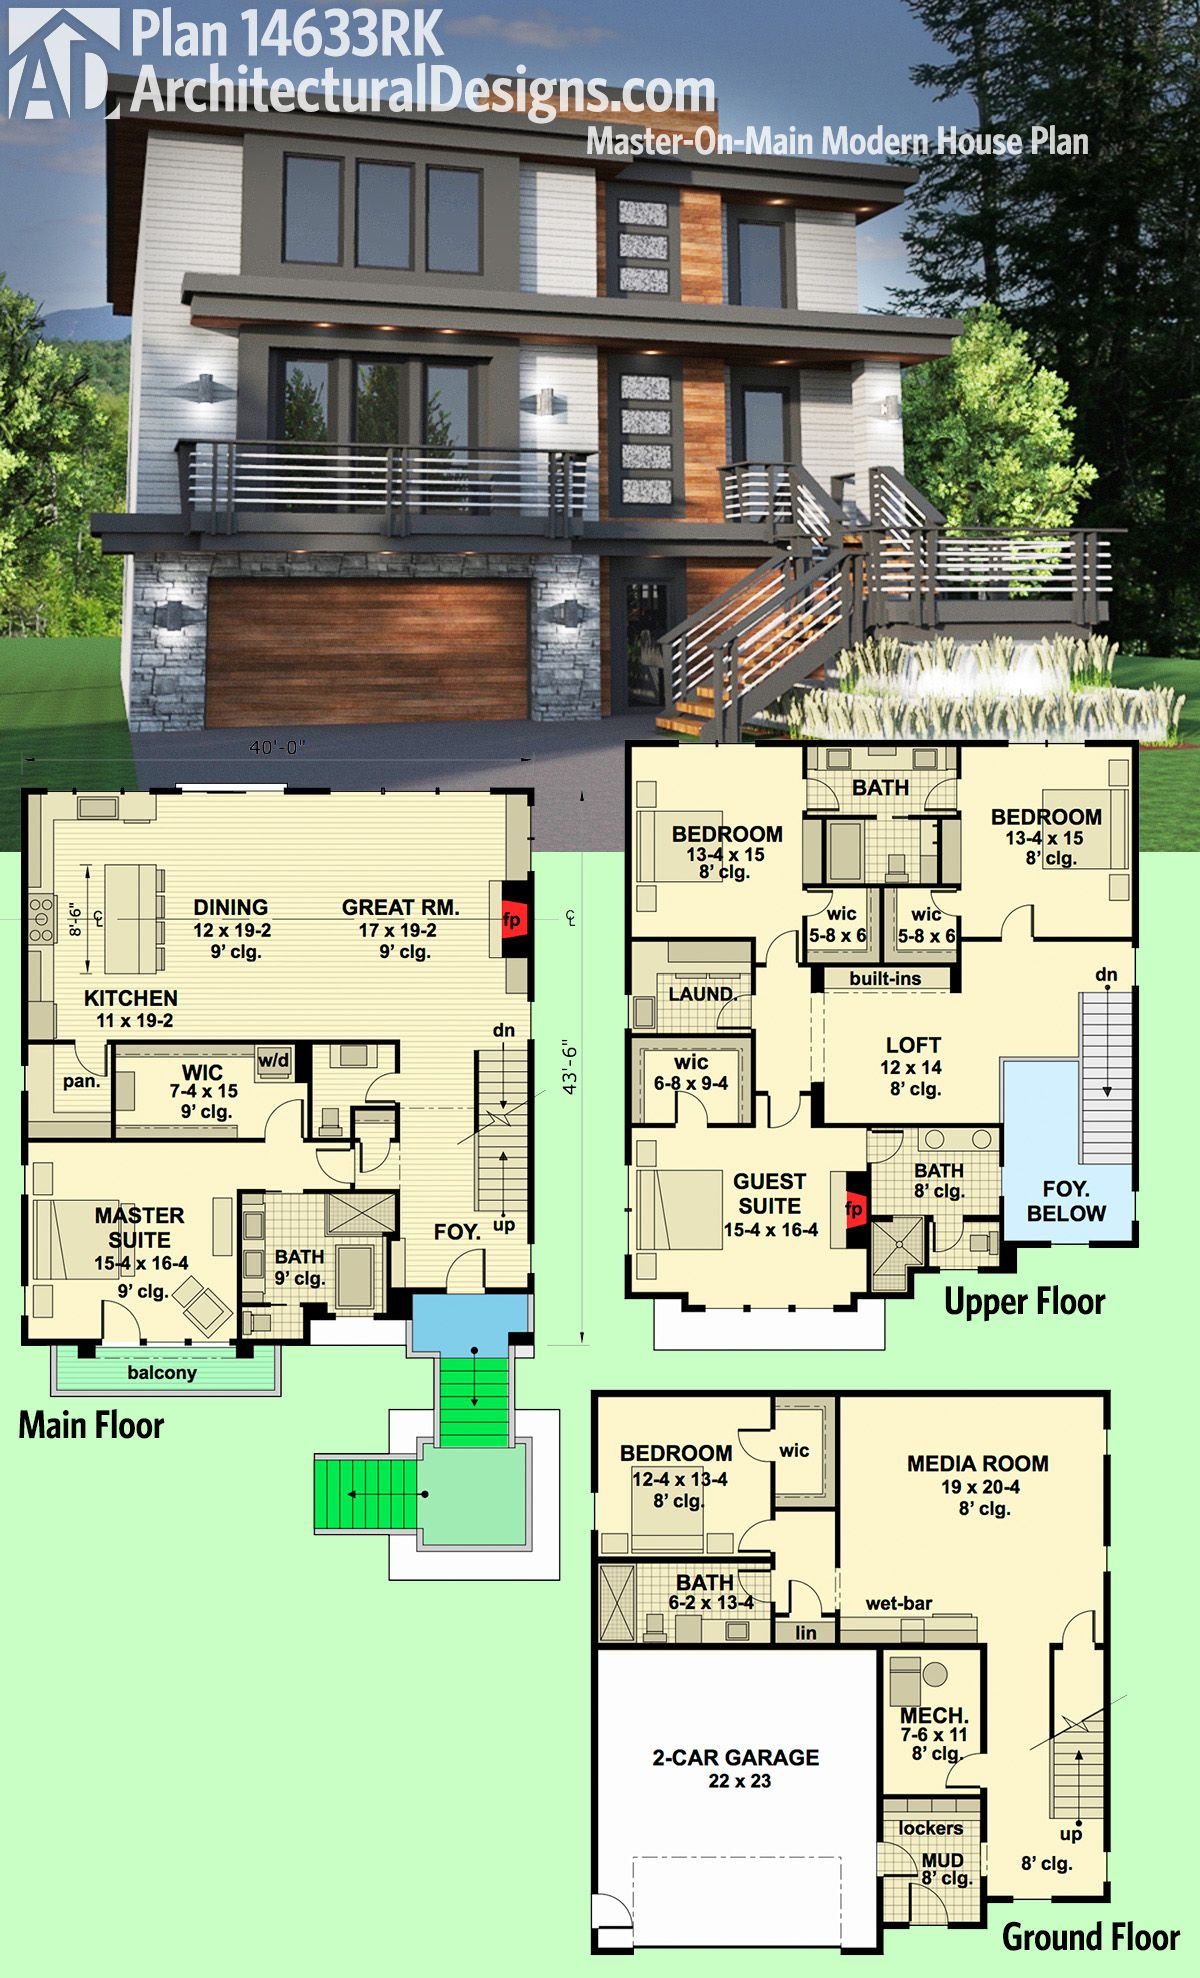 Plan 14633rk master on main modern house plan modern for Modern house plans and designs